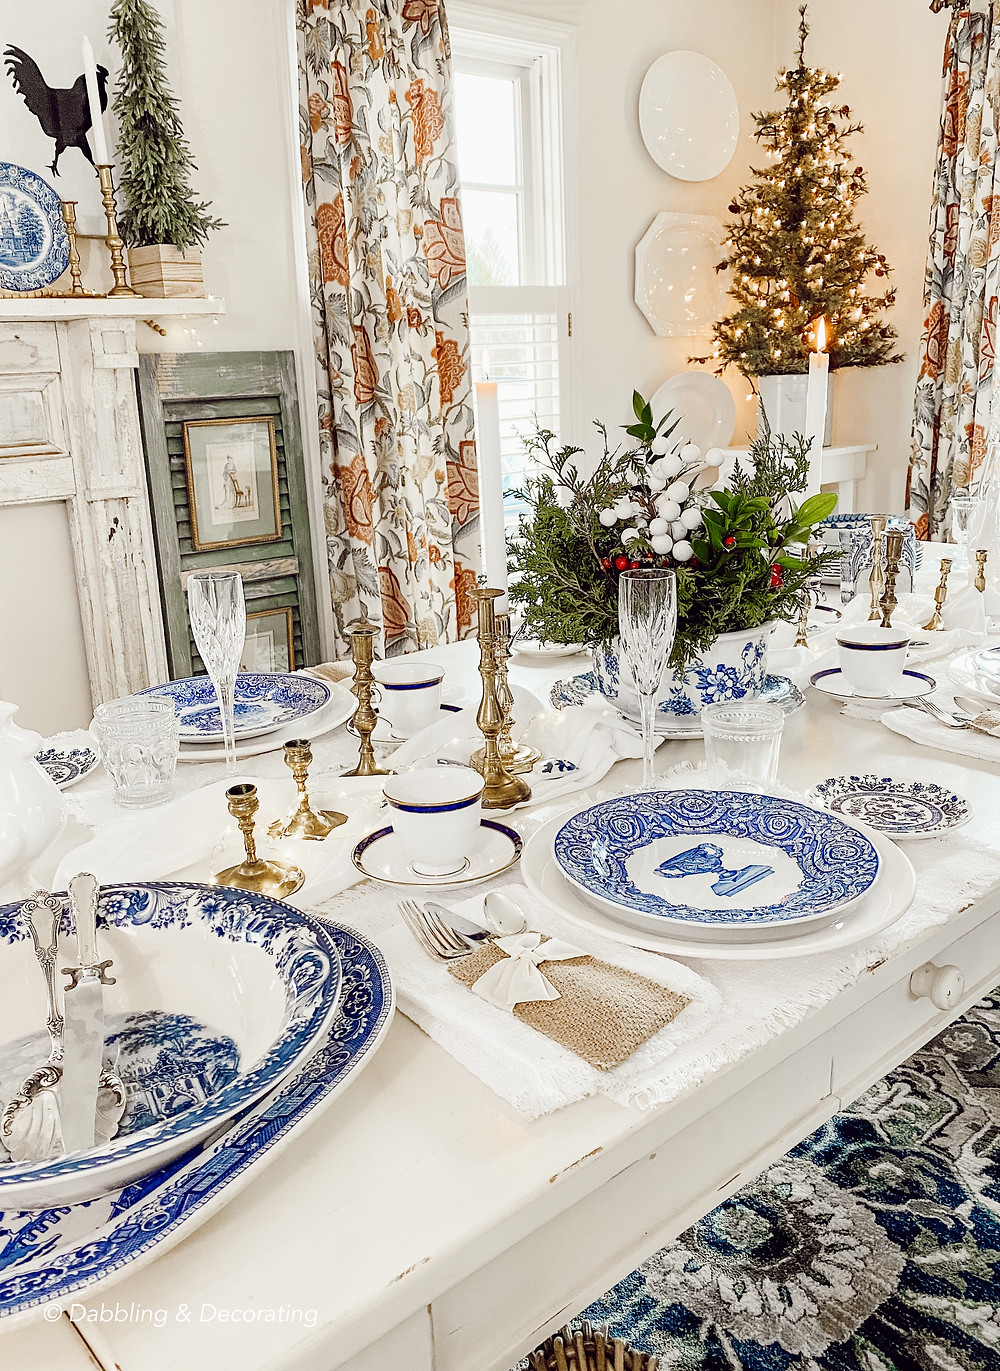 Collected Antique Blue and White Tablecape